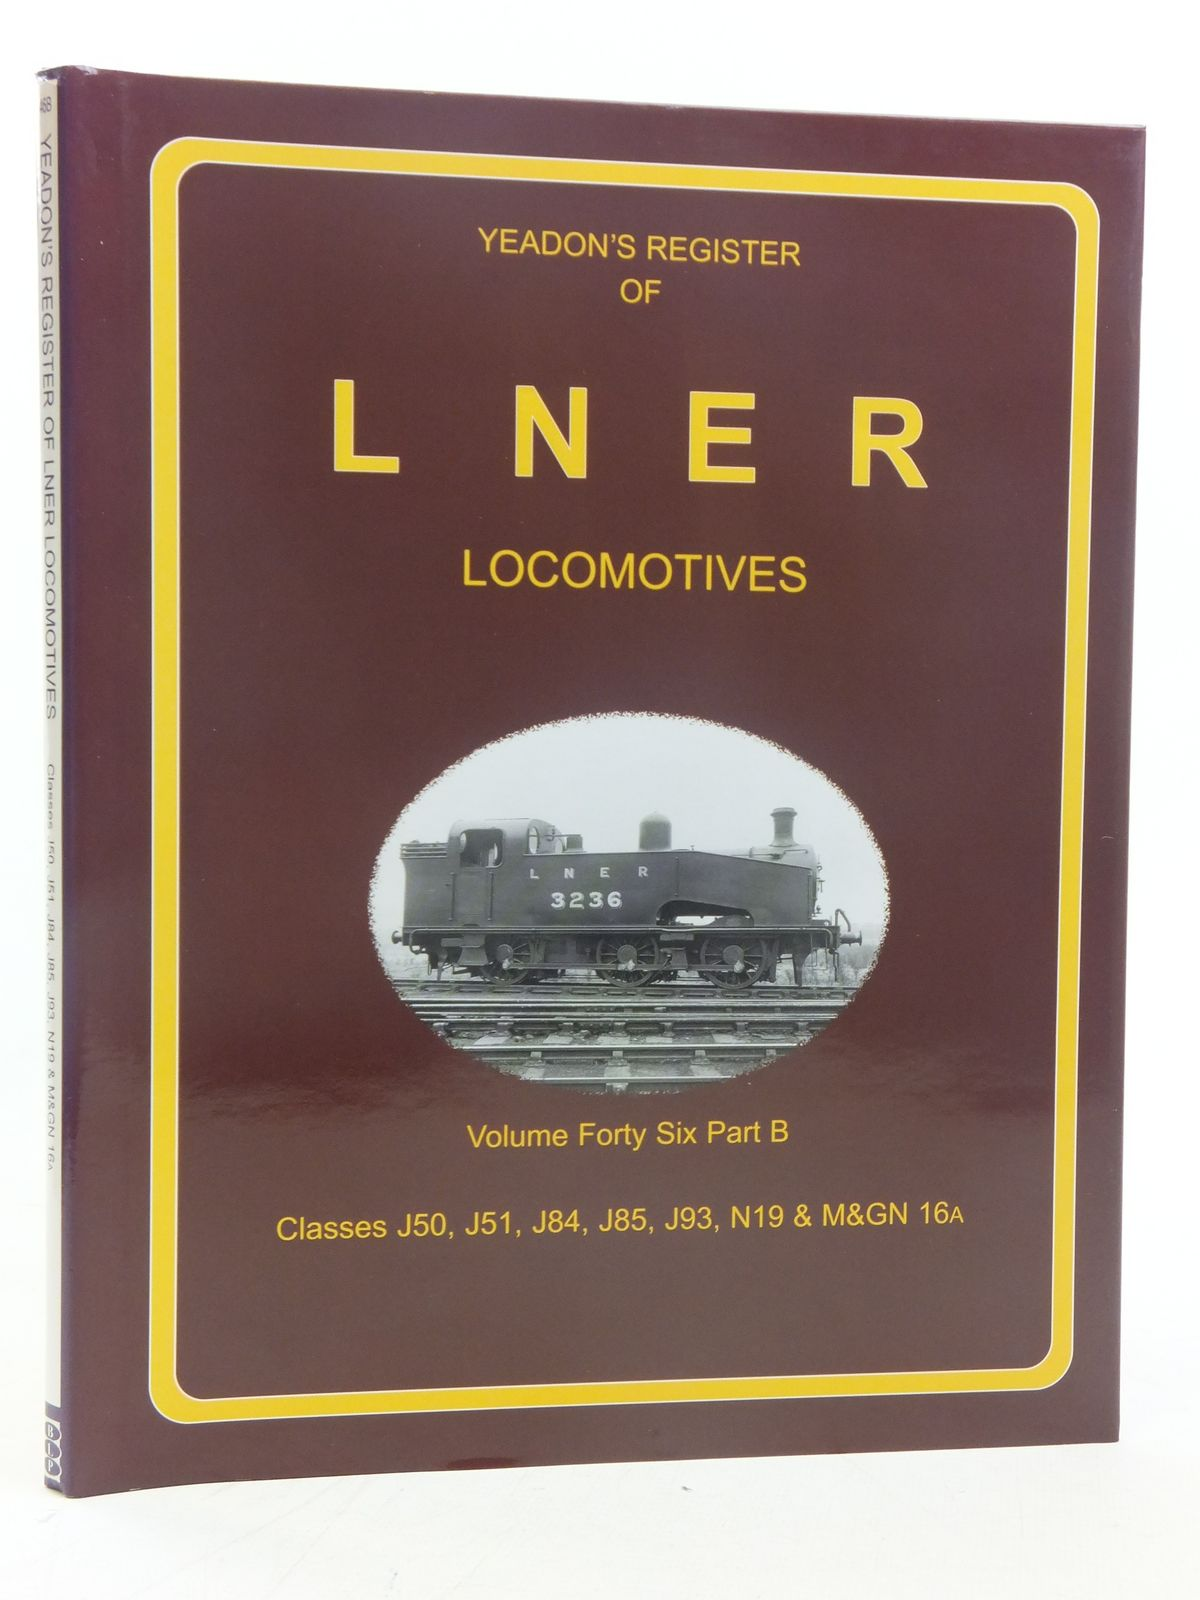 Photo of YEADON'S REGISTER OF LNER LOCOMOTIVES VOLUME FORTY SIX PART B published by Challenger Publications, Book Law Publications (STOCK CODE: 1606894)  for sale by Stella & Rose's Books